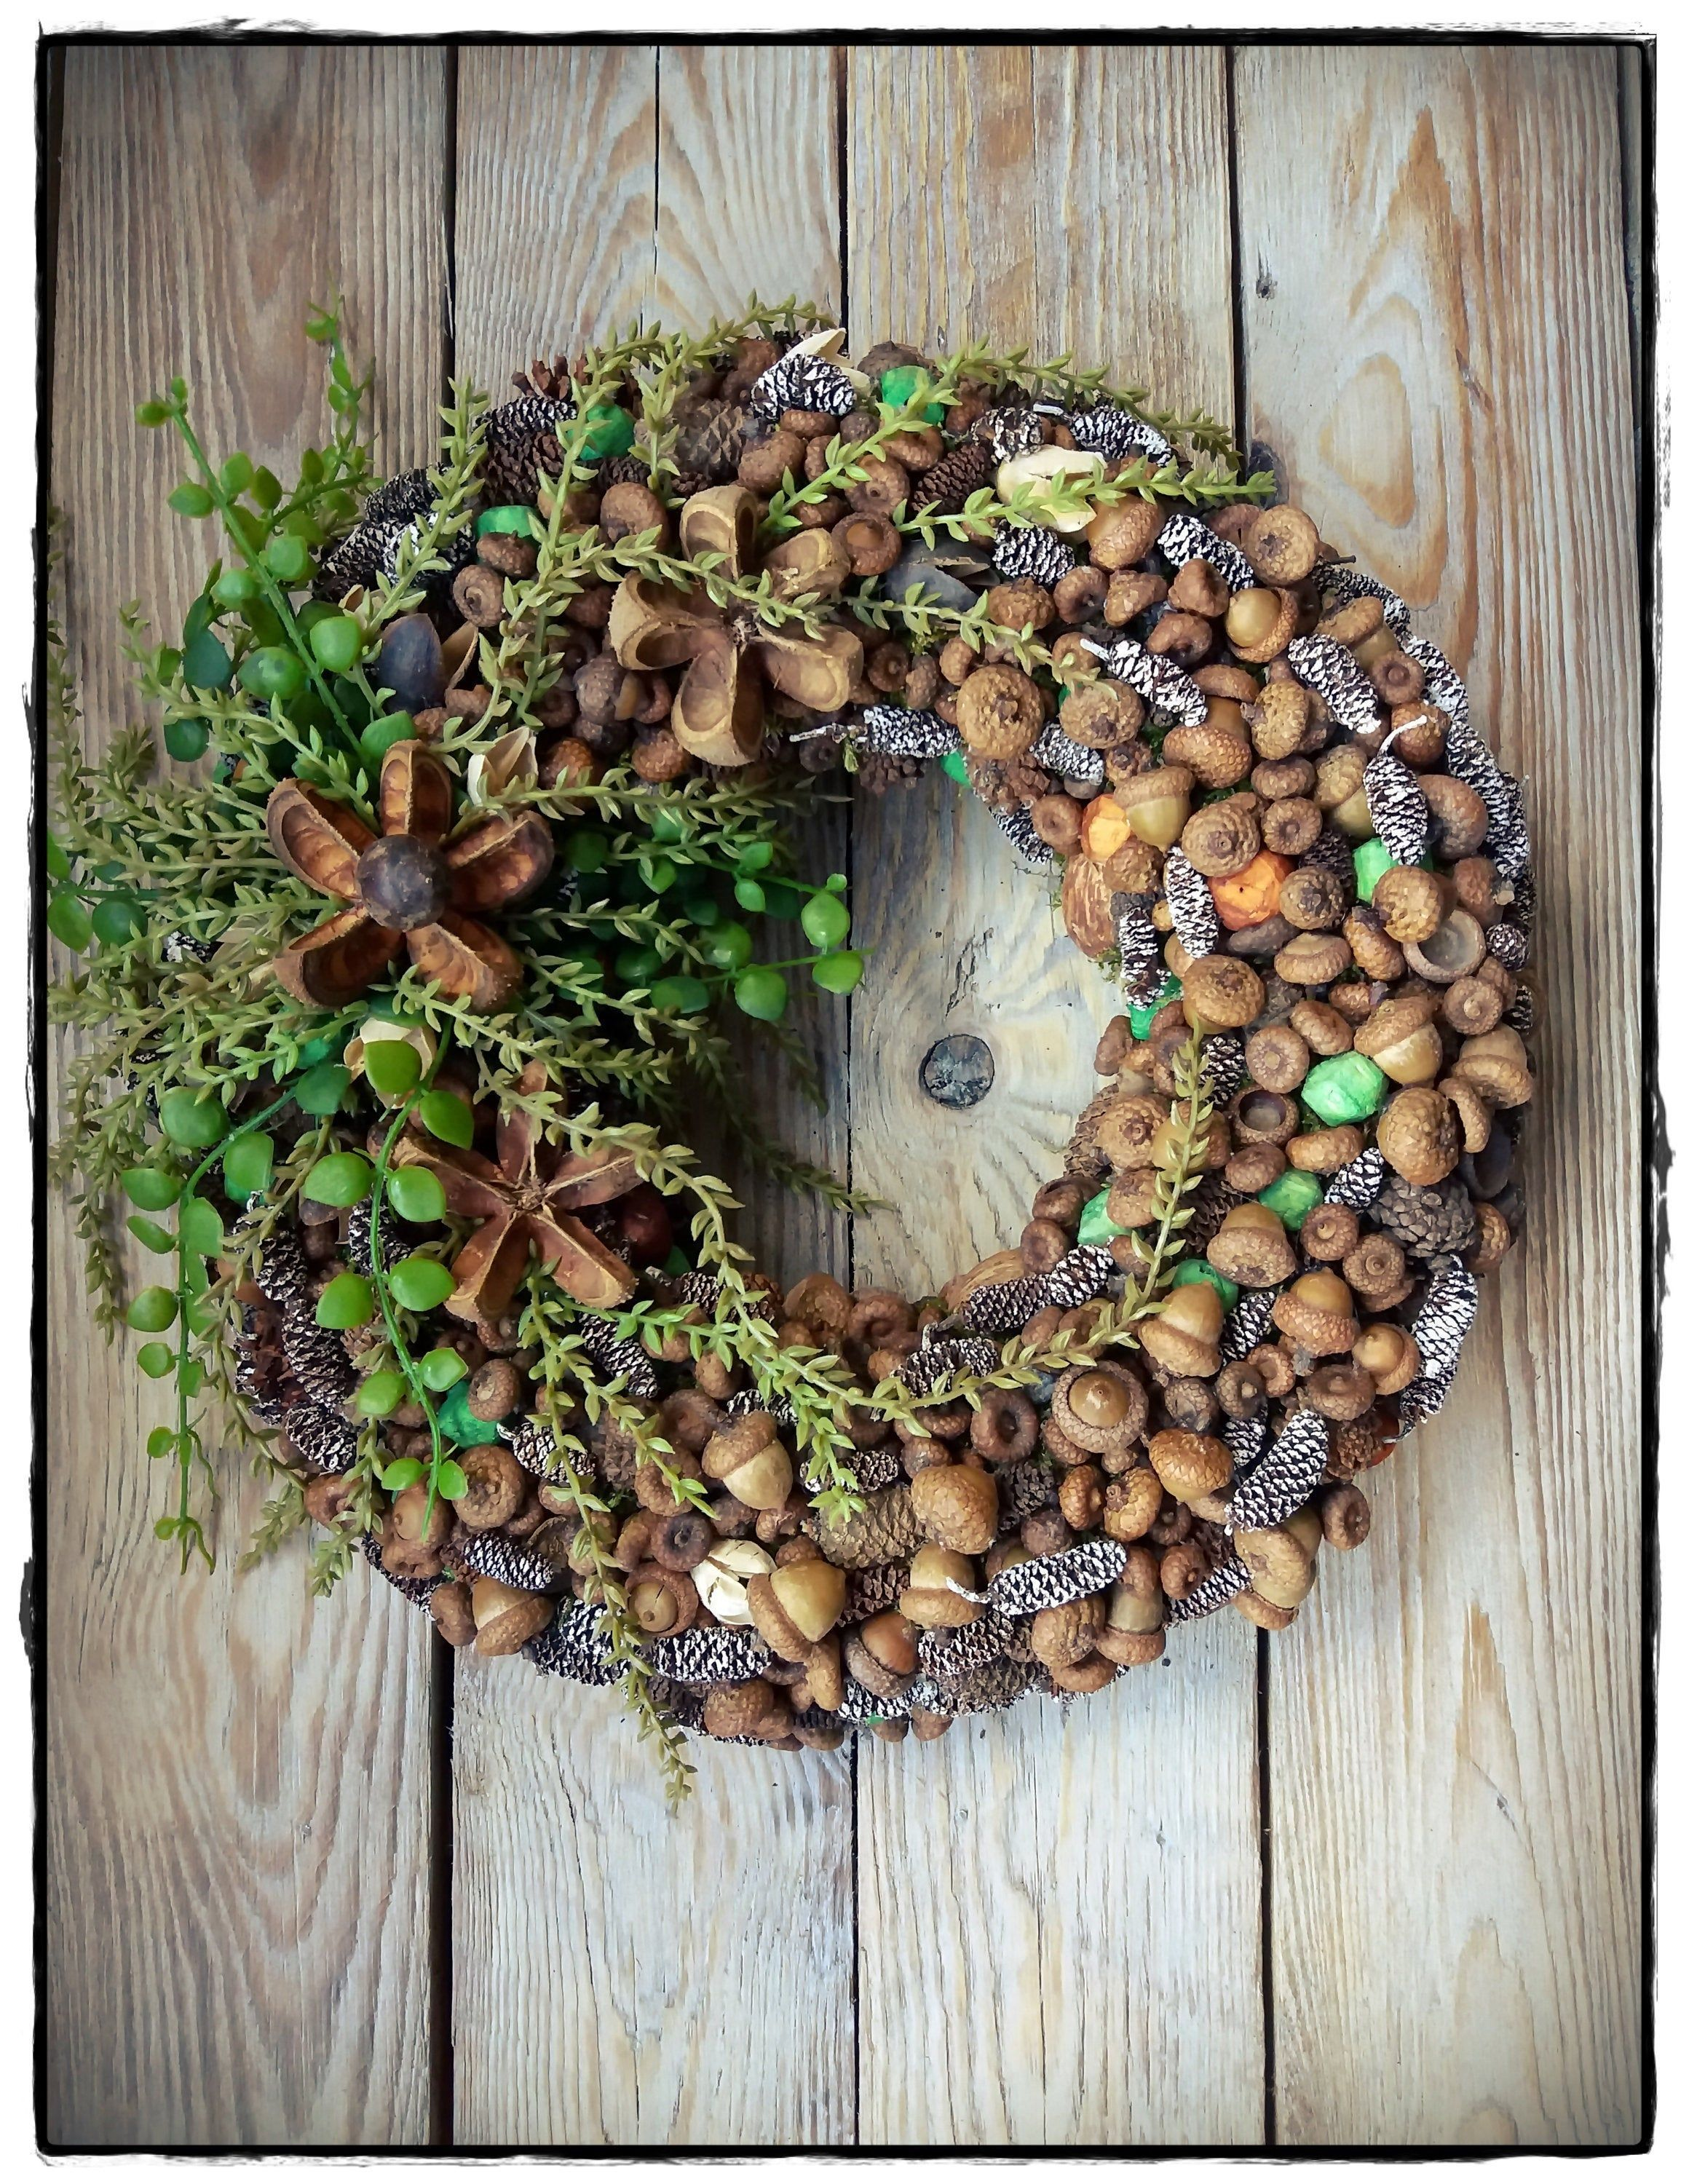 Photo of Natural wreath, autumn/winter wreath, Christmas wreath, table wreath, home decoration with natural and artificial elements,housewarming gift